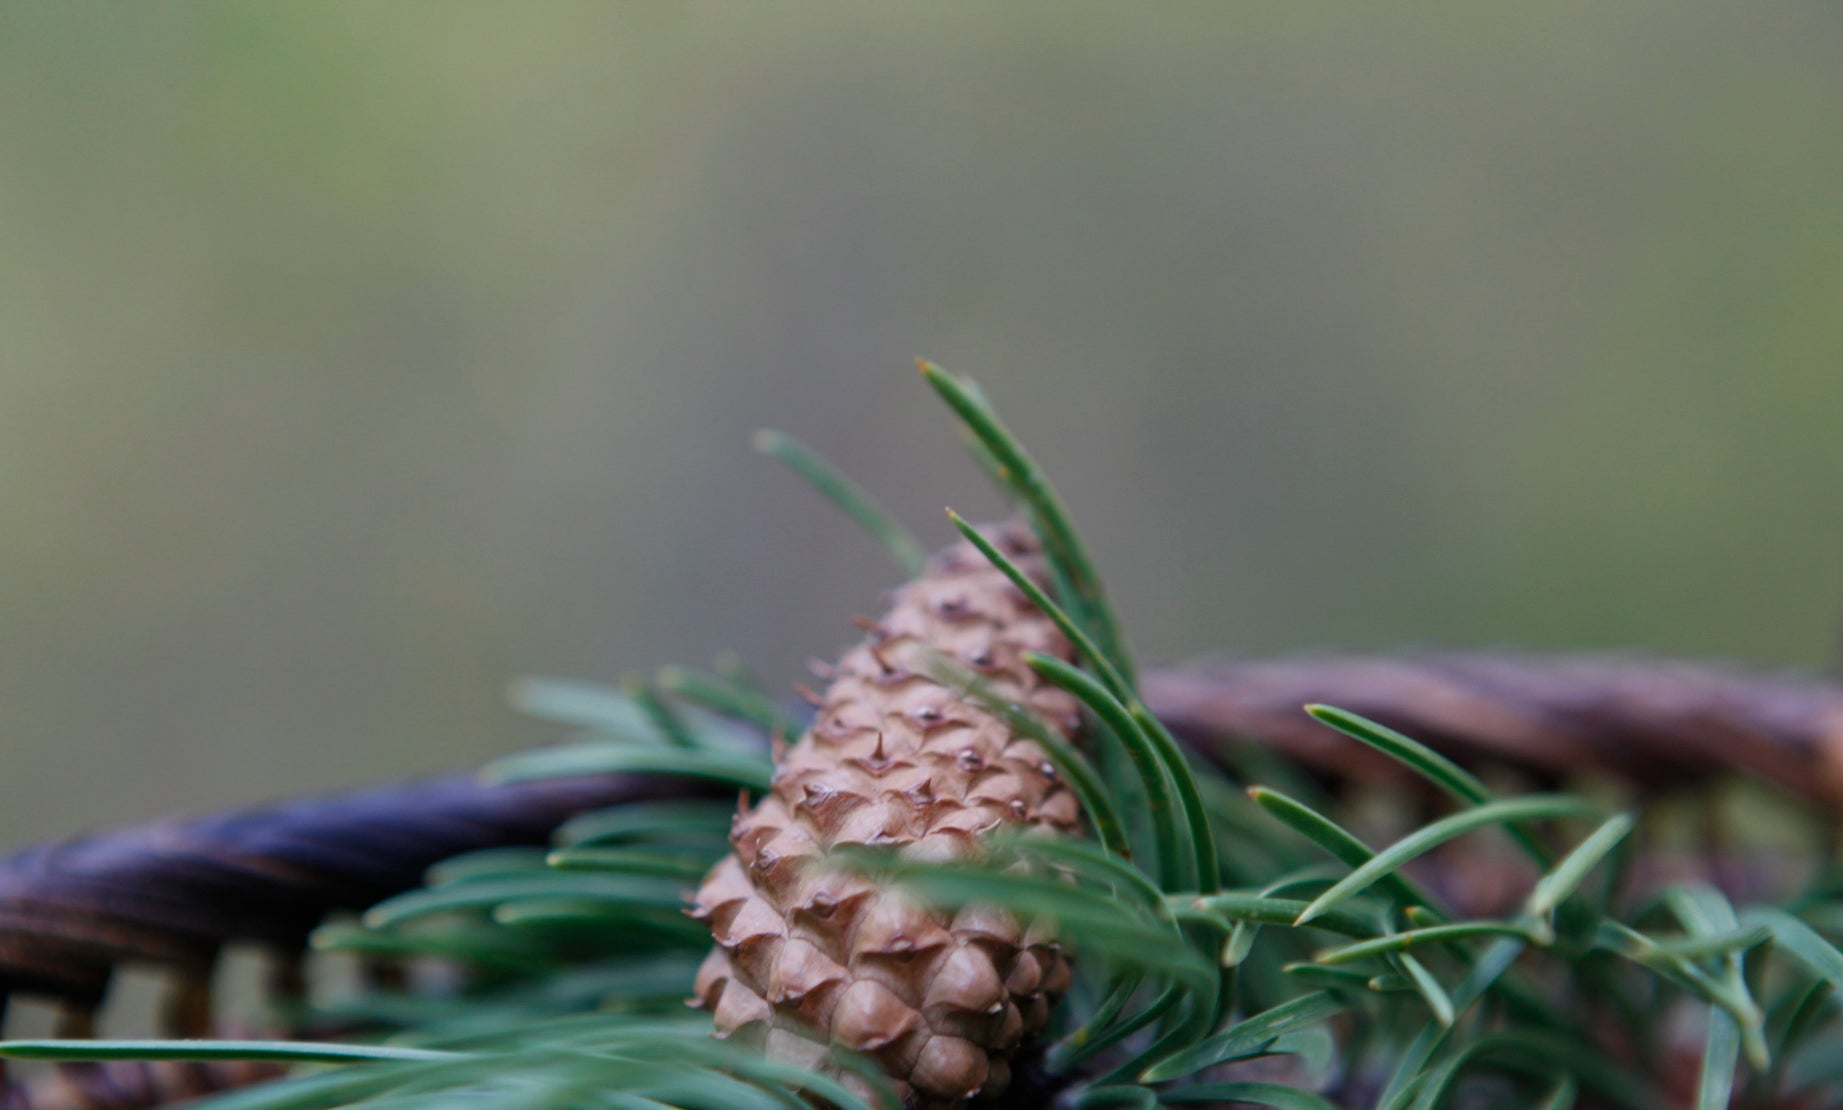 Pine cones and pine needles in a basket for pine needle tea